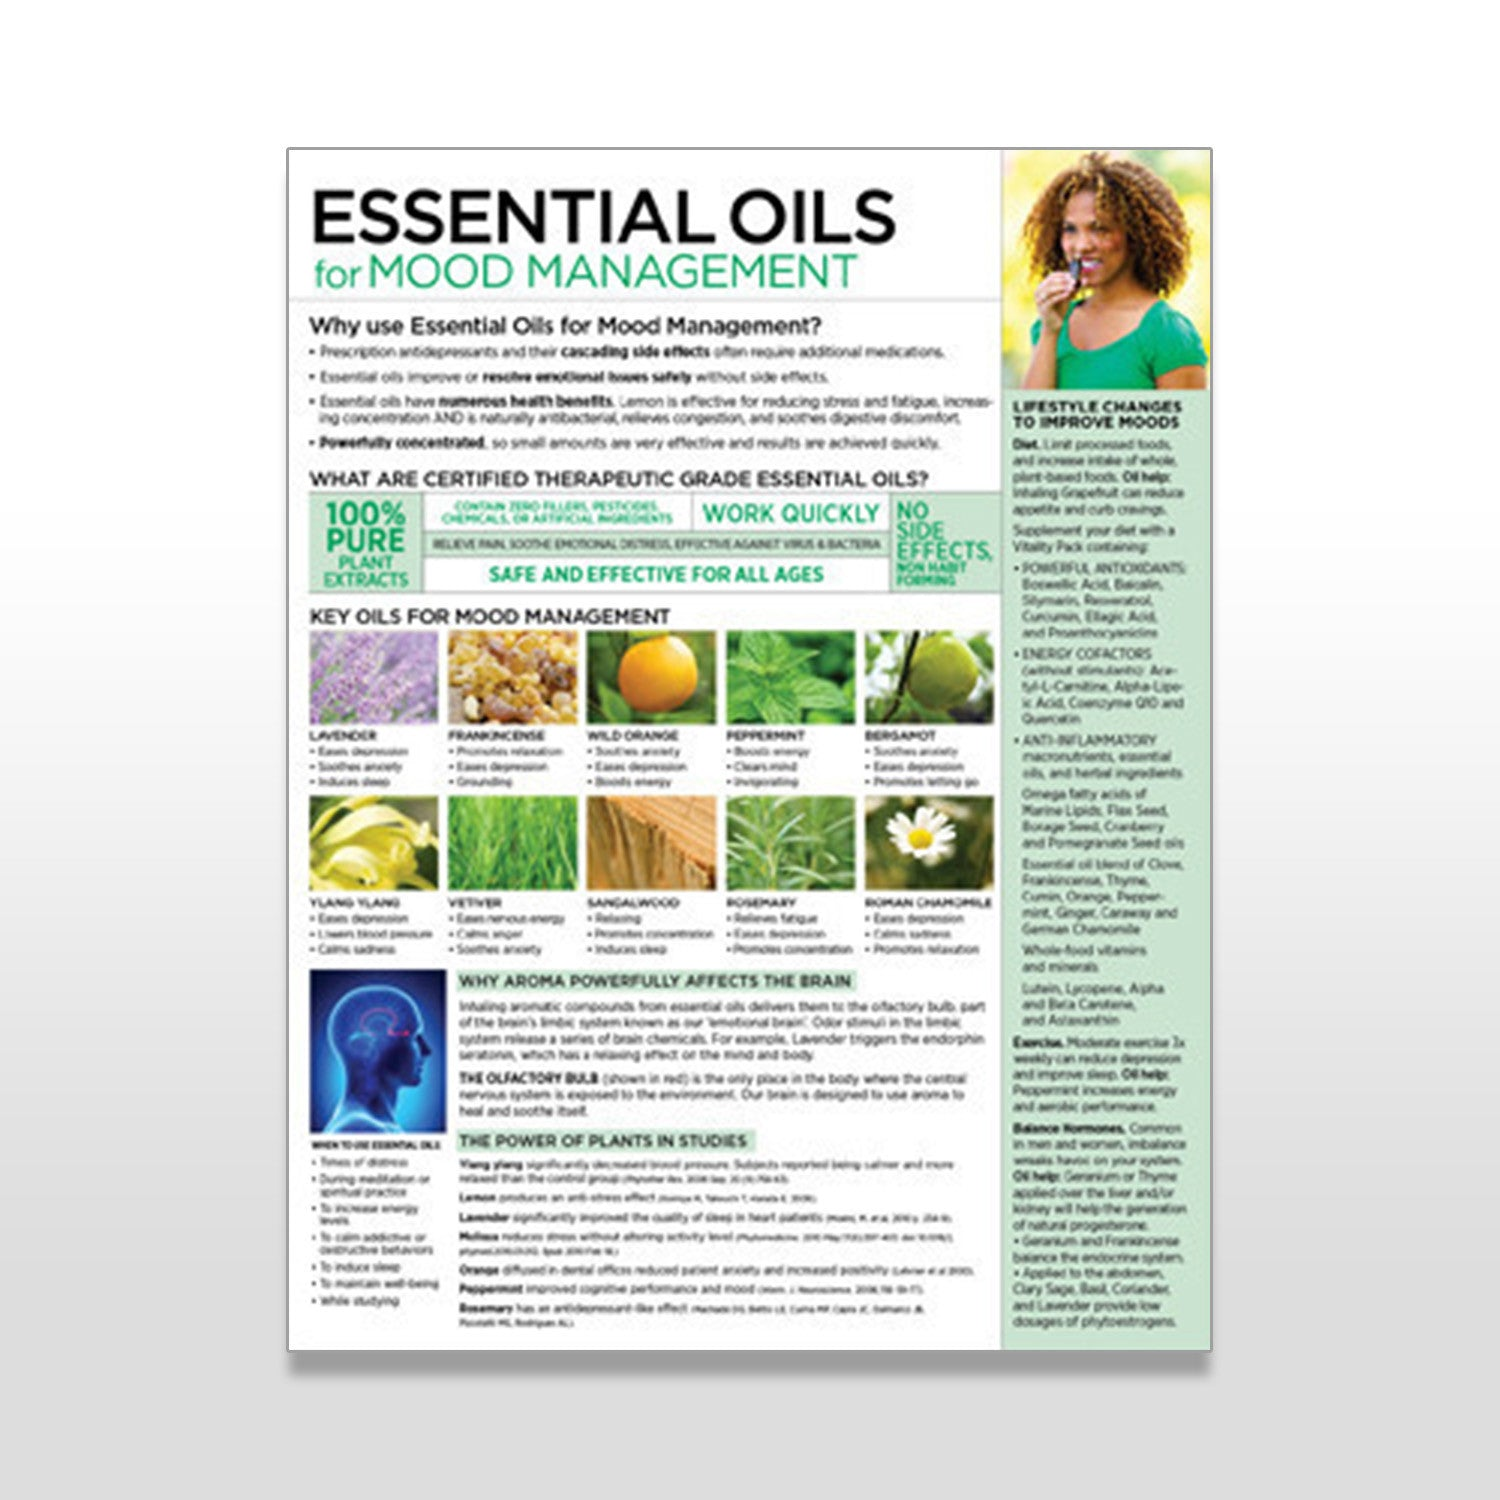 Essential Oils for Mood Management - Tear Pad